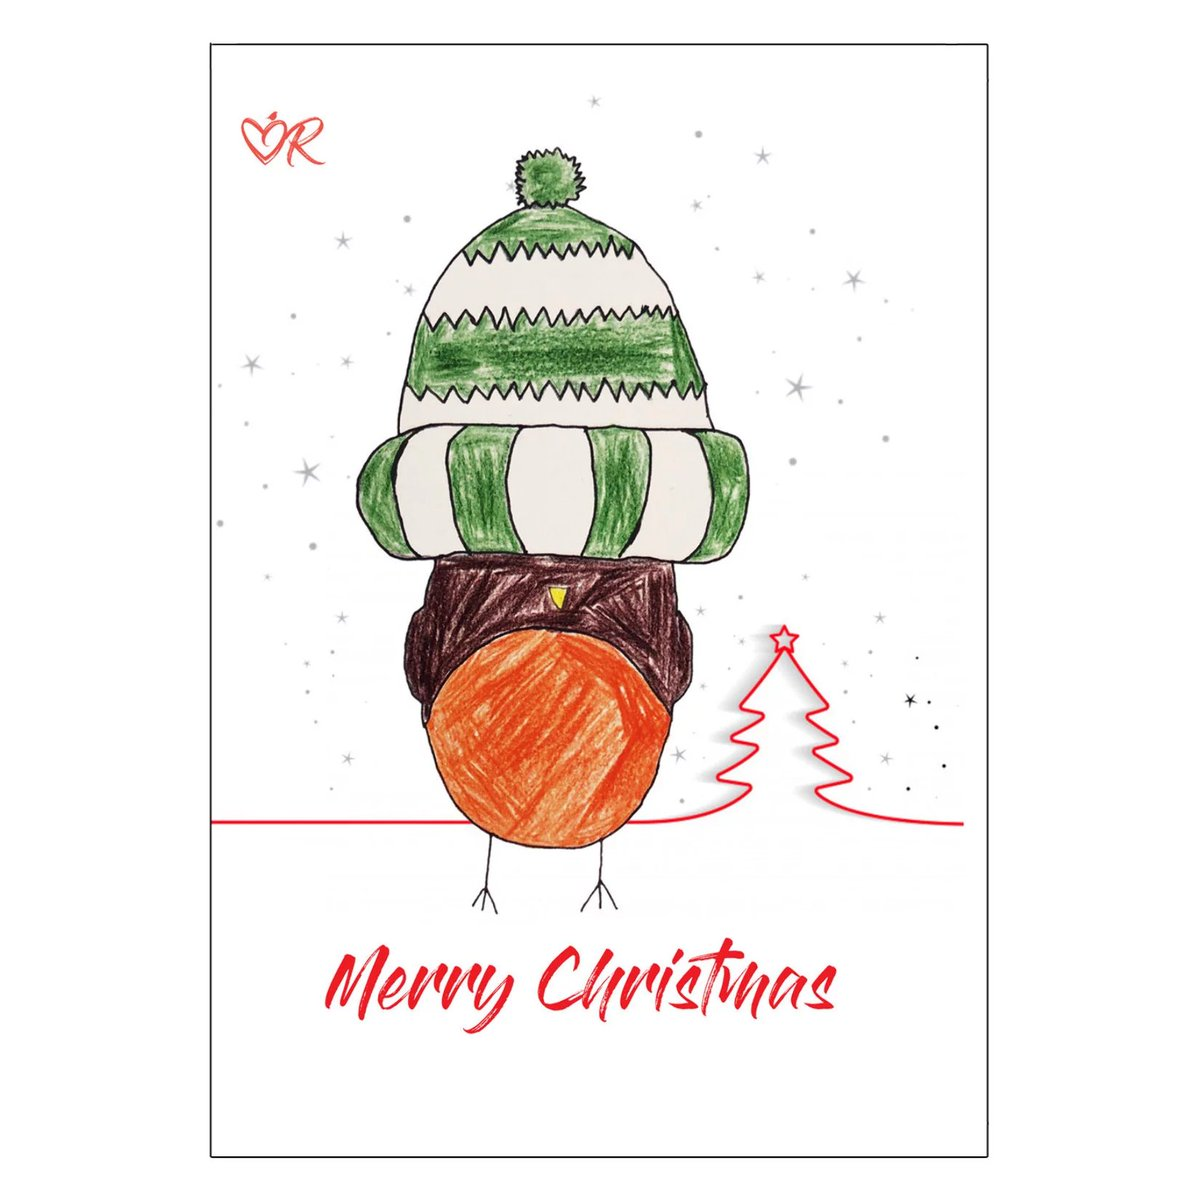 We are down to our last few packs of our very special Christmas cards! you can buy them here: https://t.co/dgPld82iYh